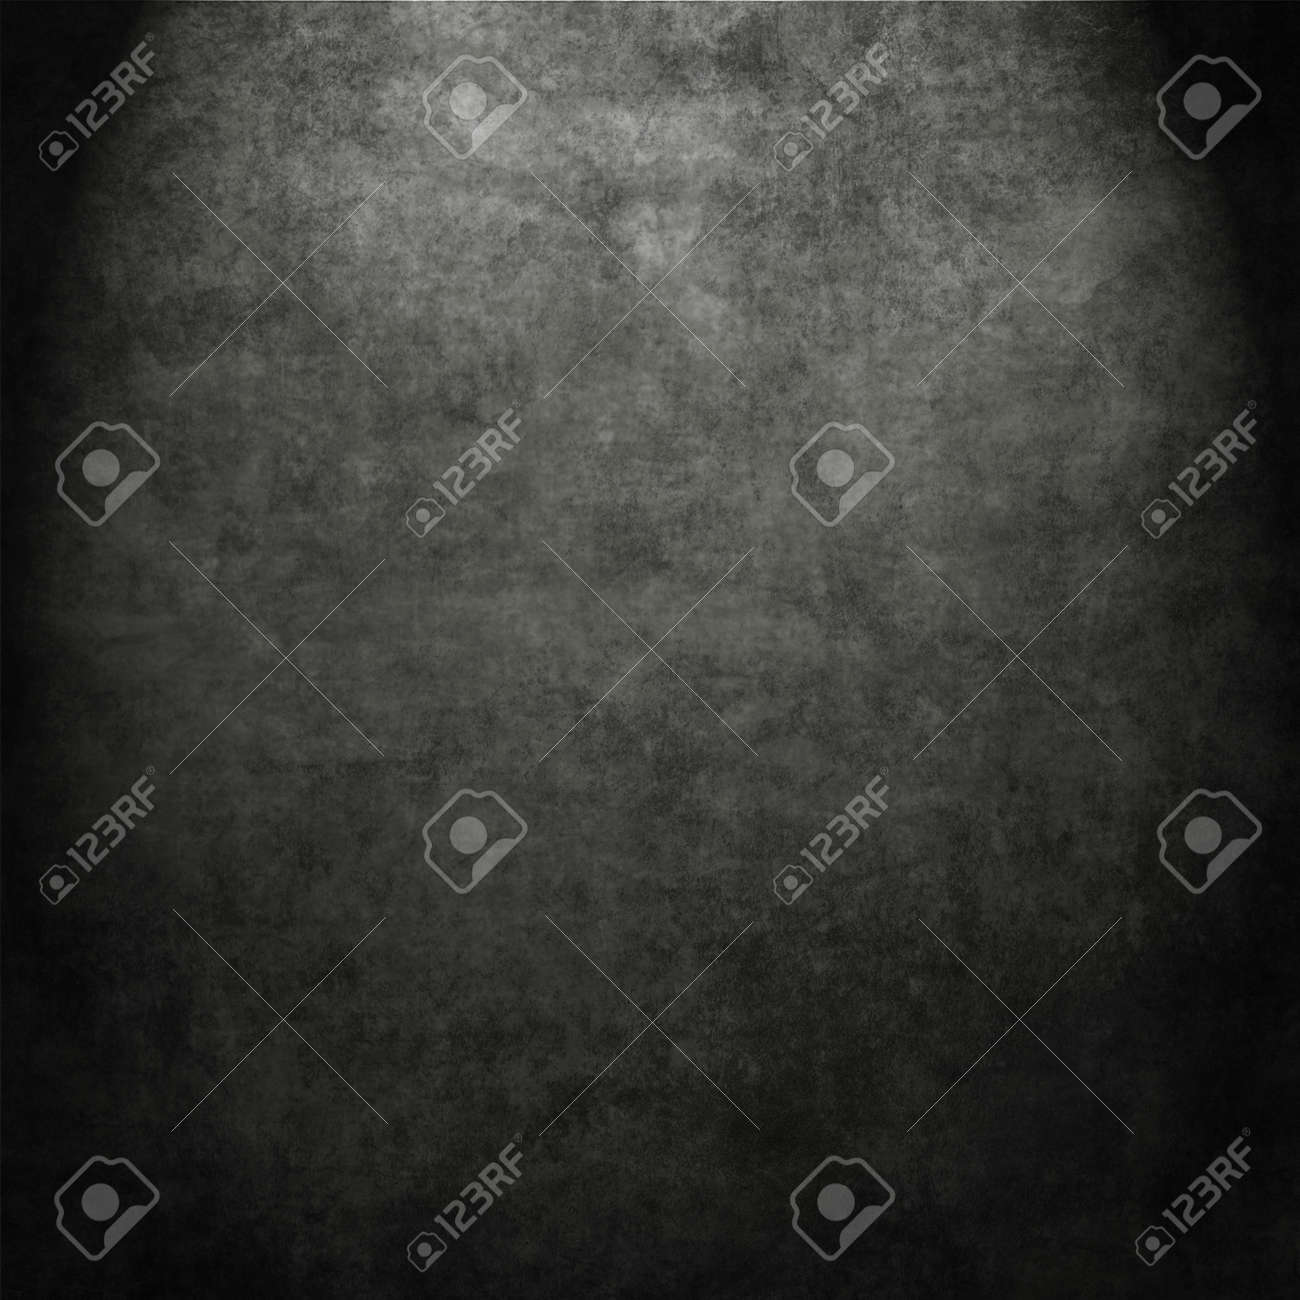 abstract black background - 31228613